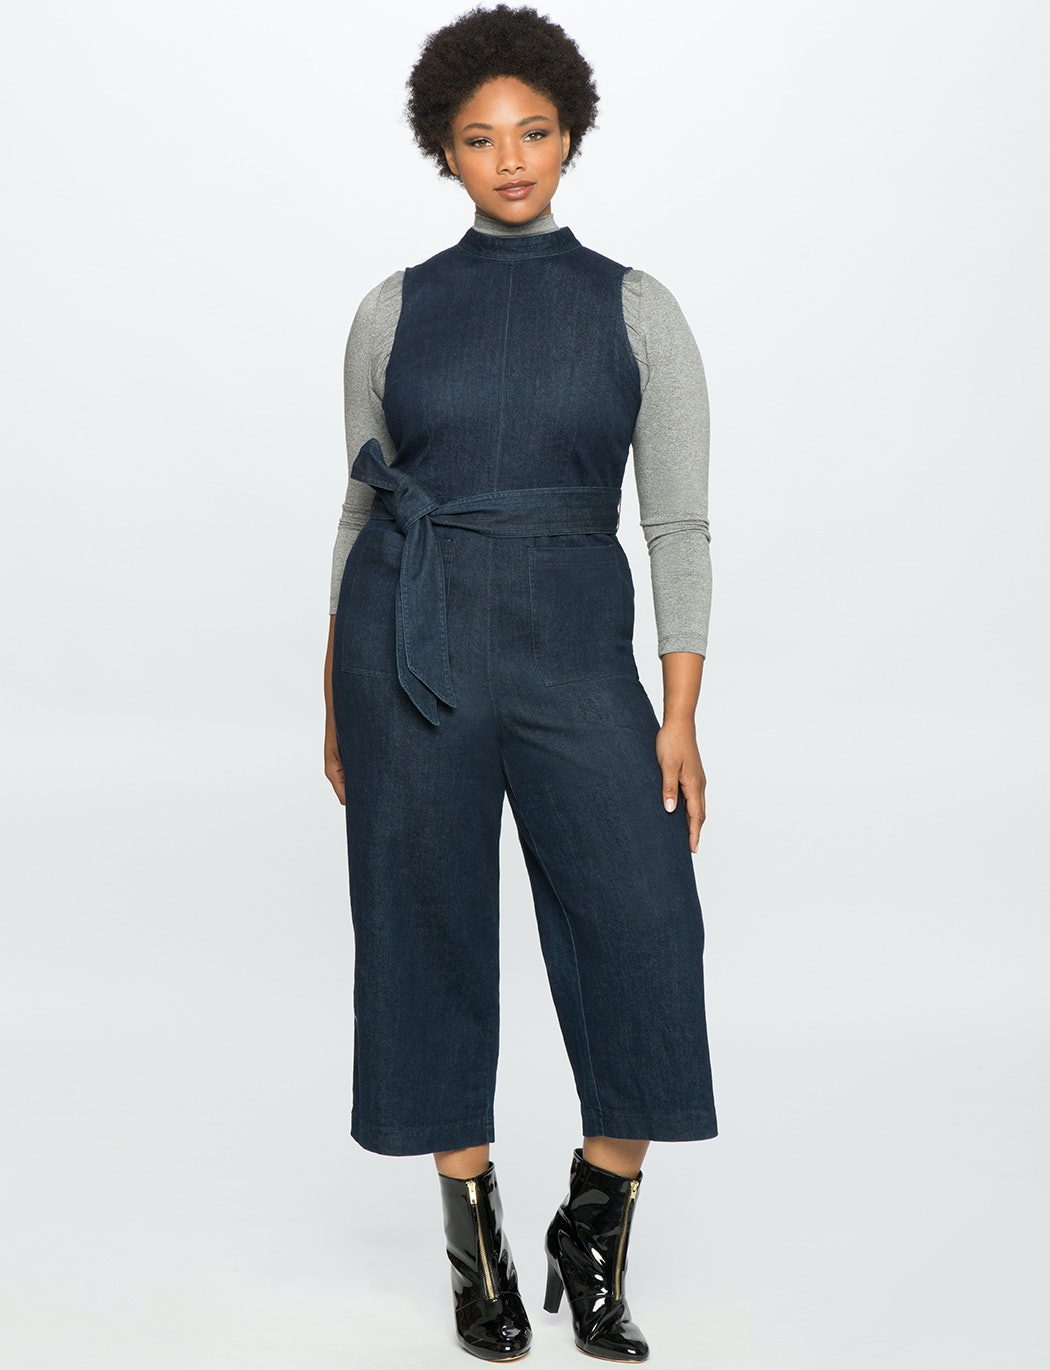 9a3900fa5b5 45 Plus Size Minimal Jumpsuits For The Most Effortlessly Perfect Fall Look